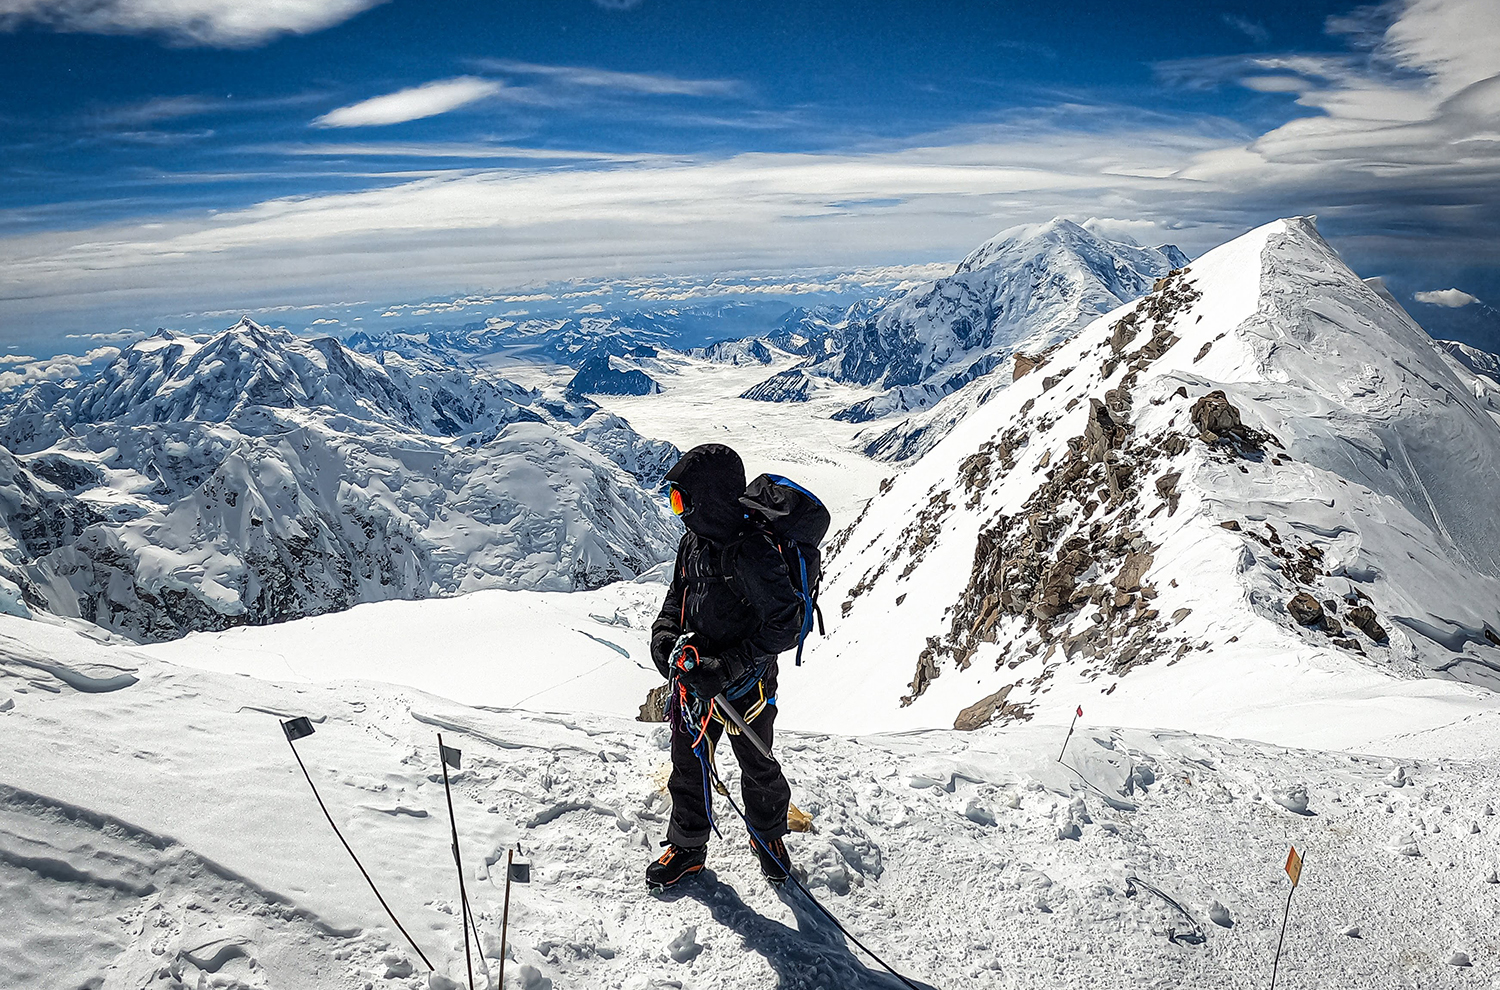 On Blister's GEAR:30 podcast we are talking about Denali again this week, this time, with Andrew Alexander King. Andrew recounts the details of the expedition, and talks about some of the most important gear he used.